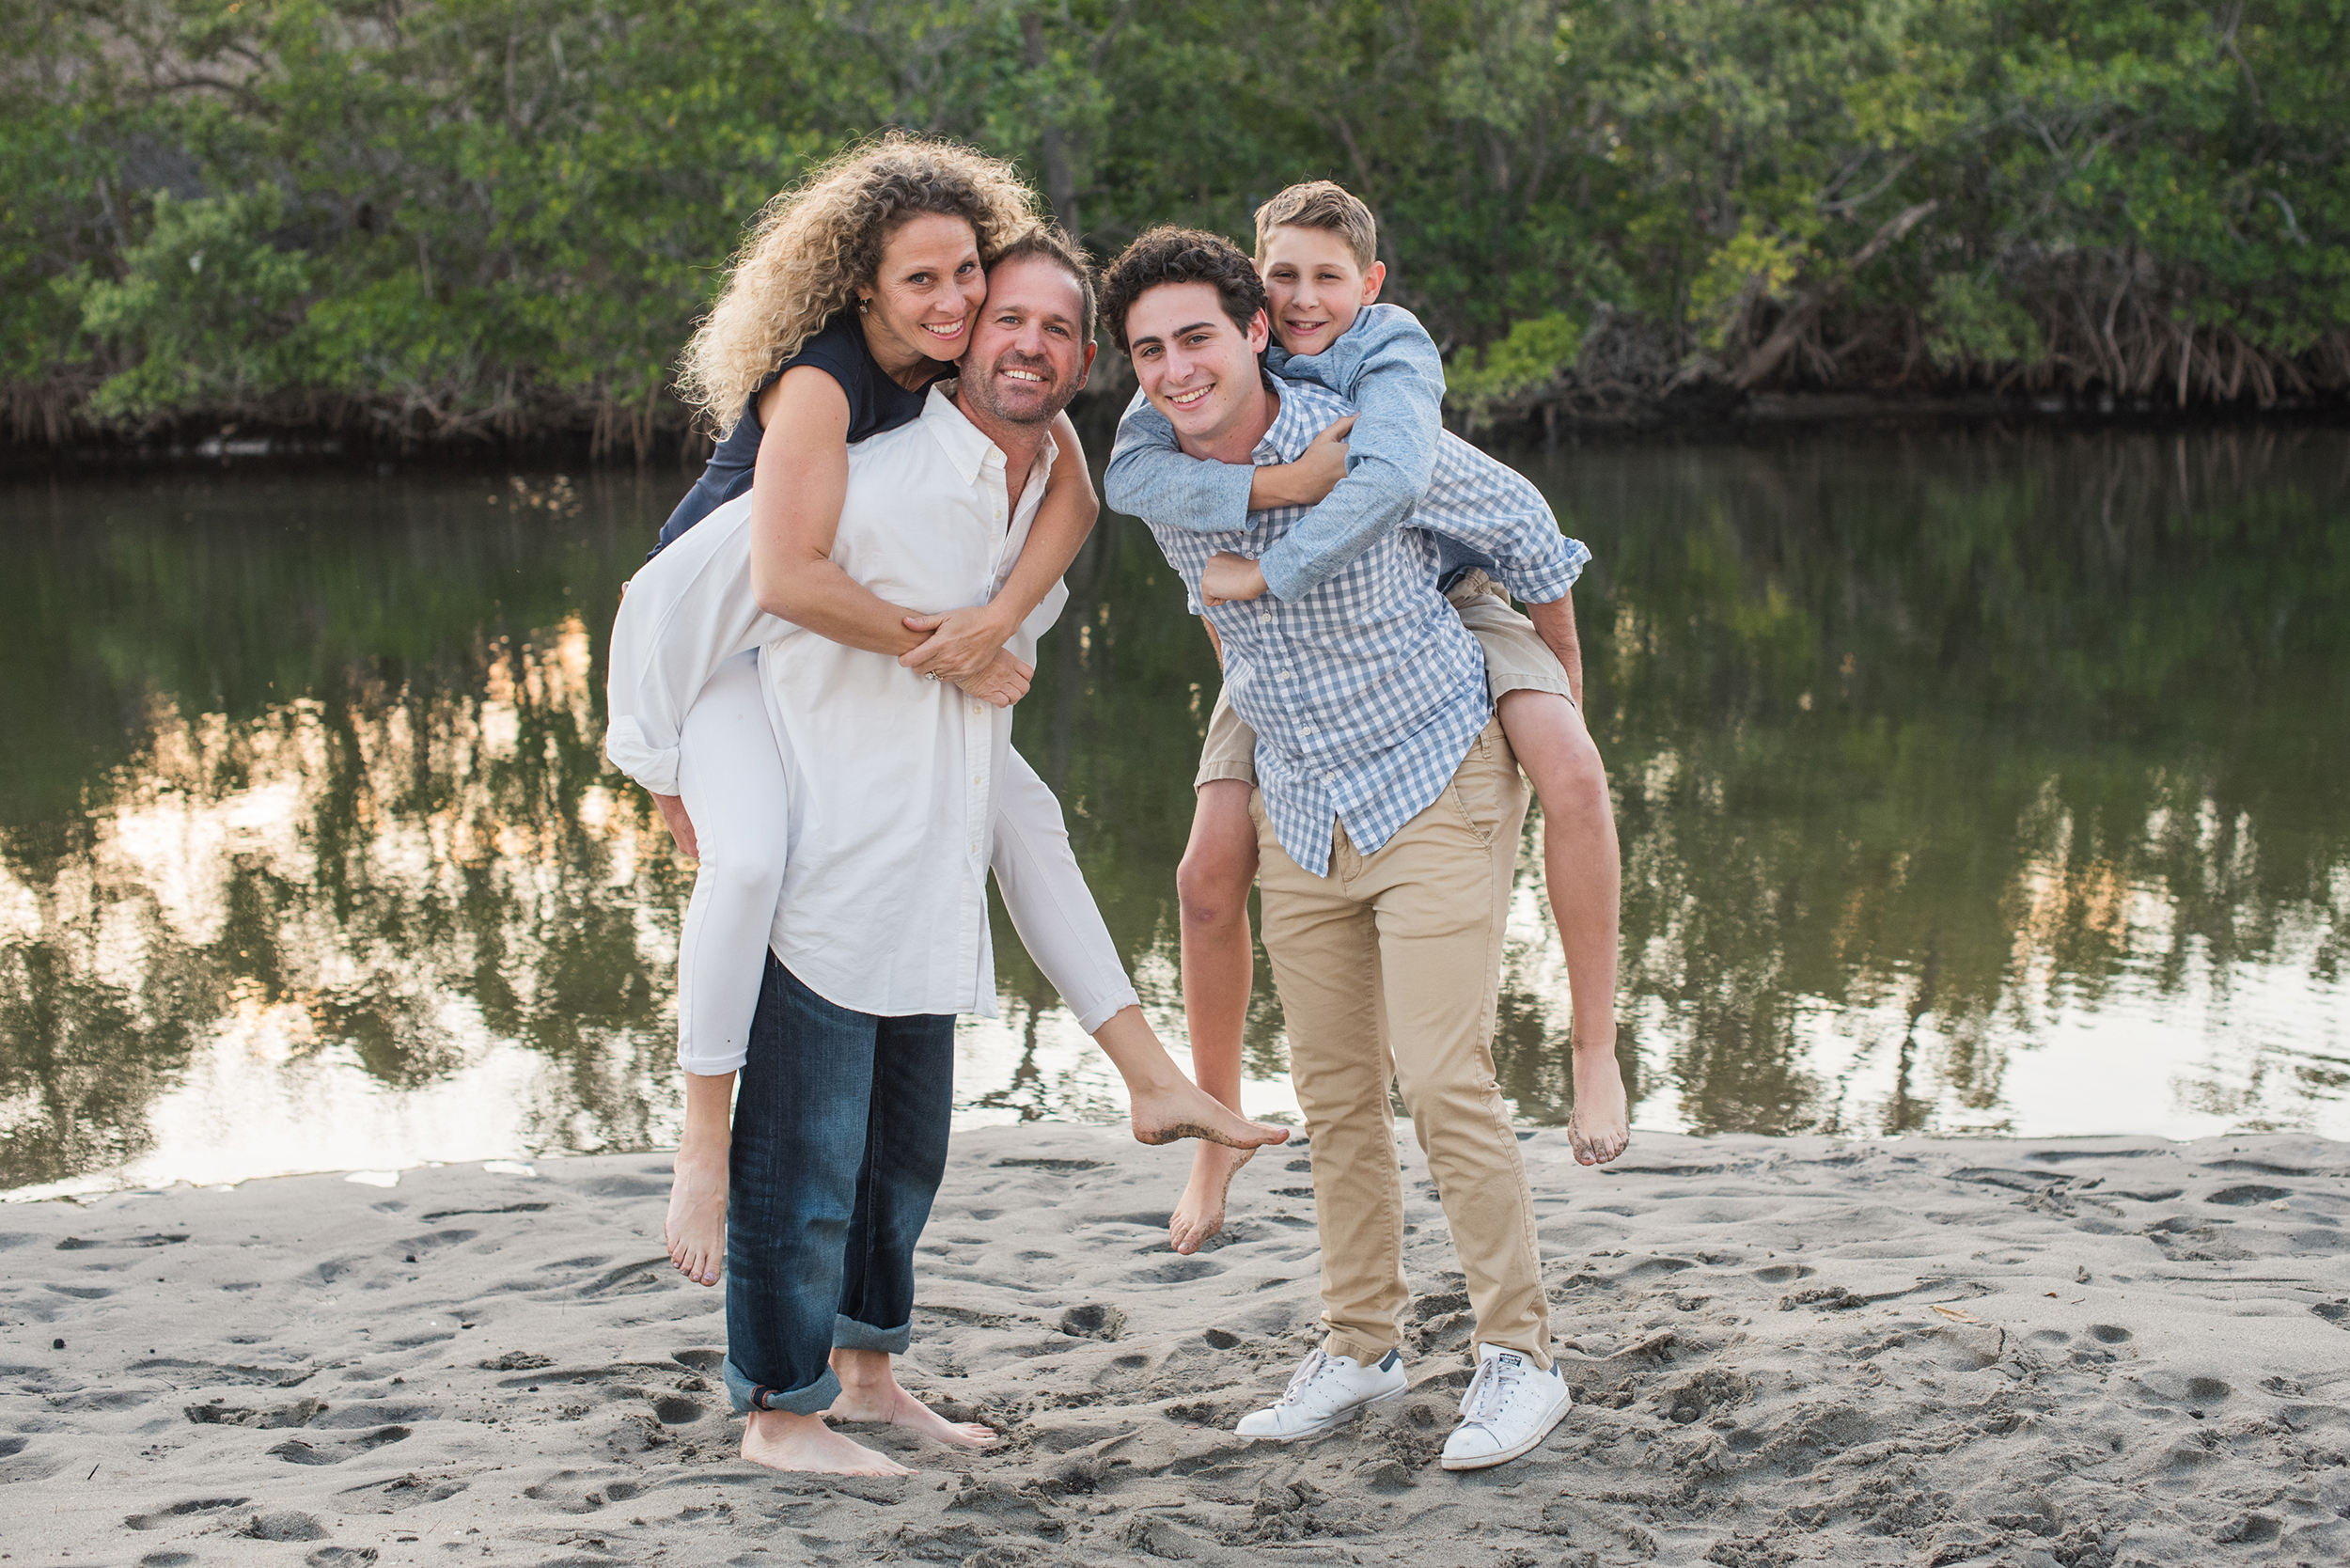 family-photography-south-florida-alison-frank-photography_15.jpg